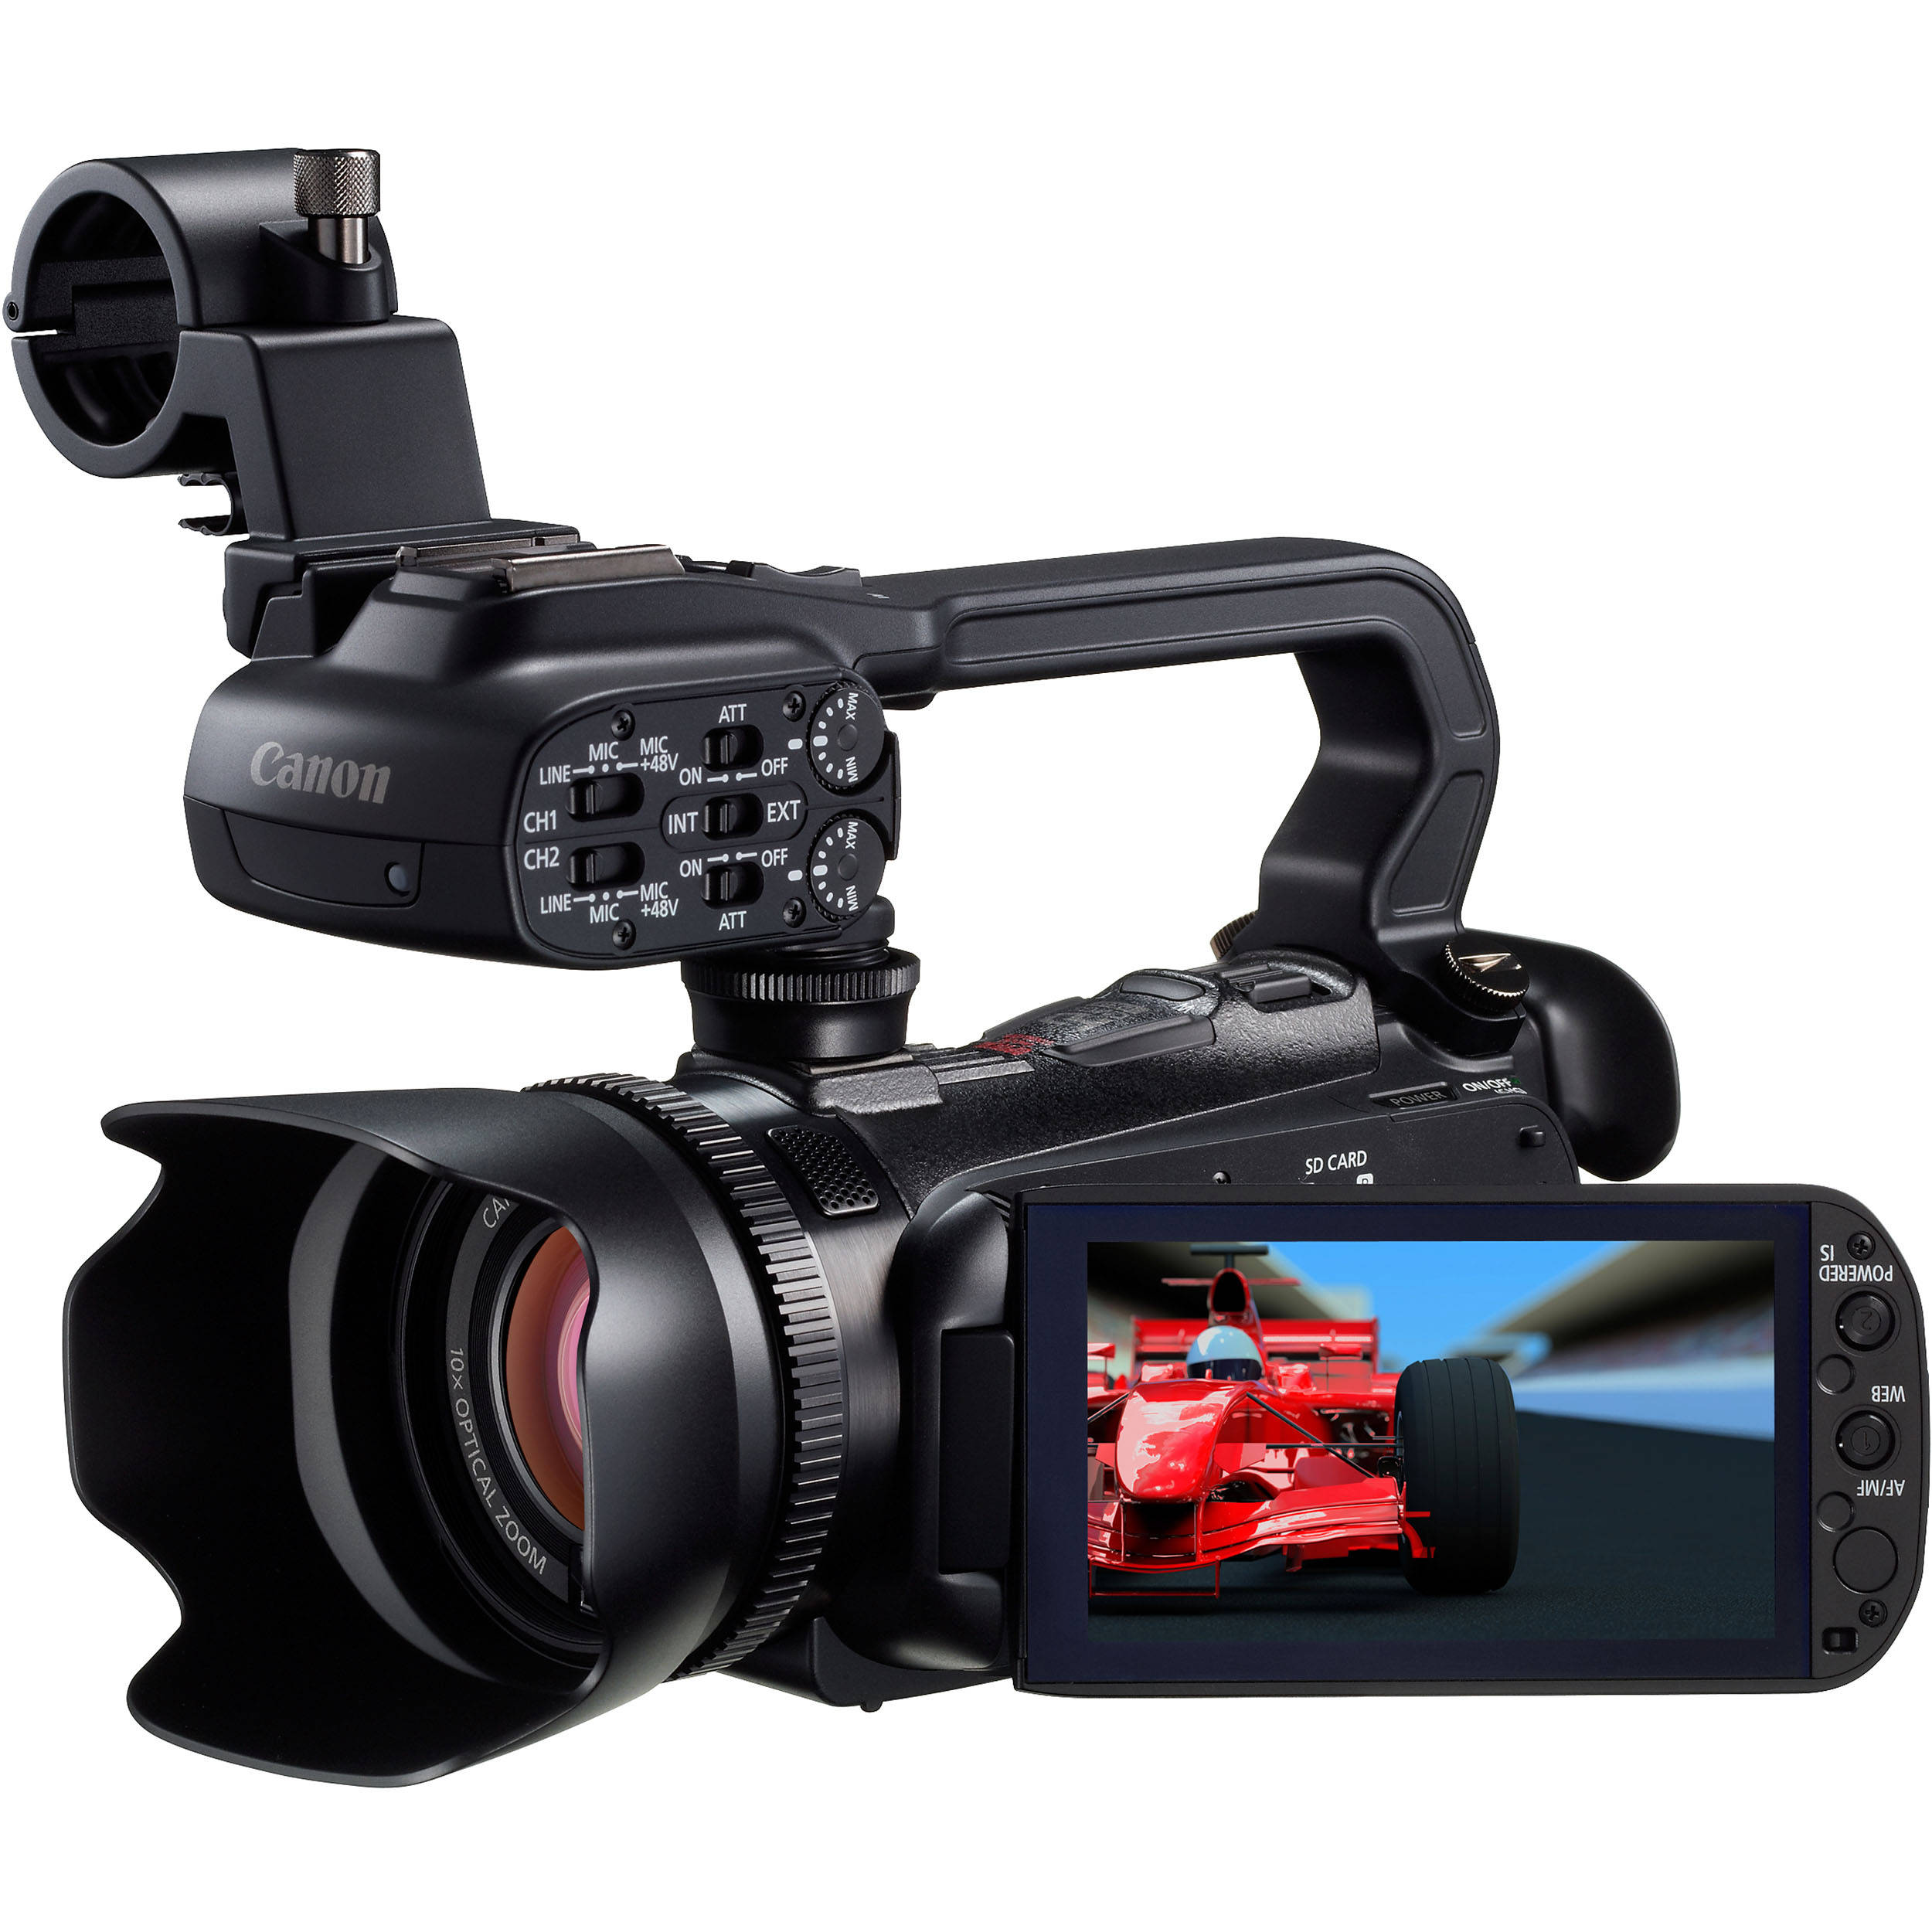 Canon Xa10 Hd Professional Pal Camcorder Xa10e Bh Photo Video Processor With Automatic Cut Off Control